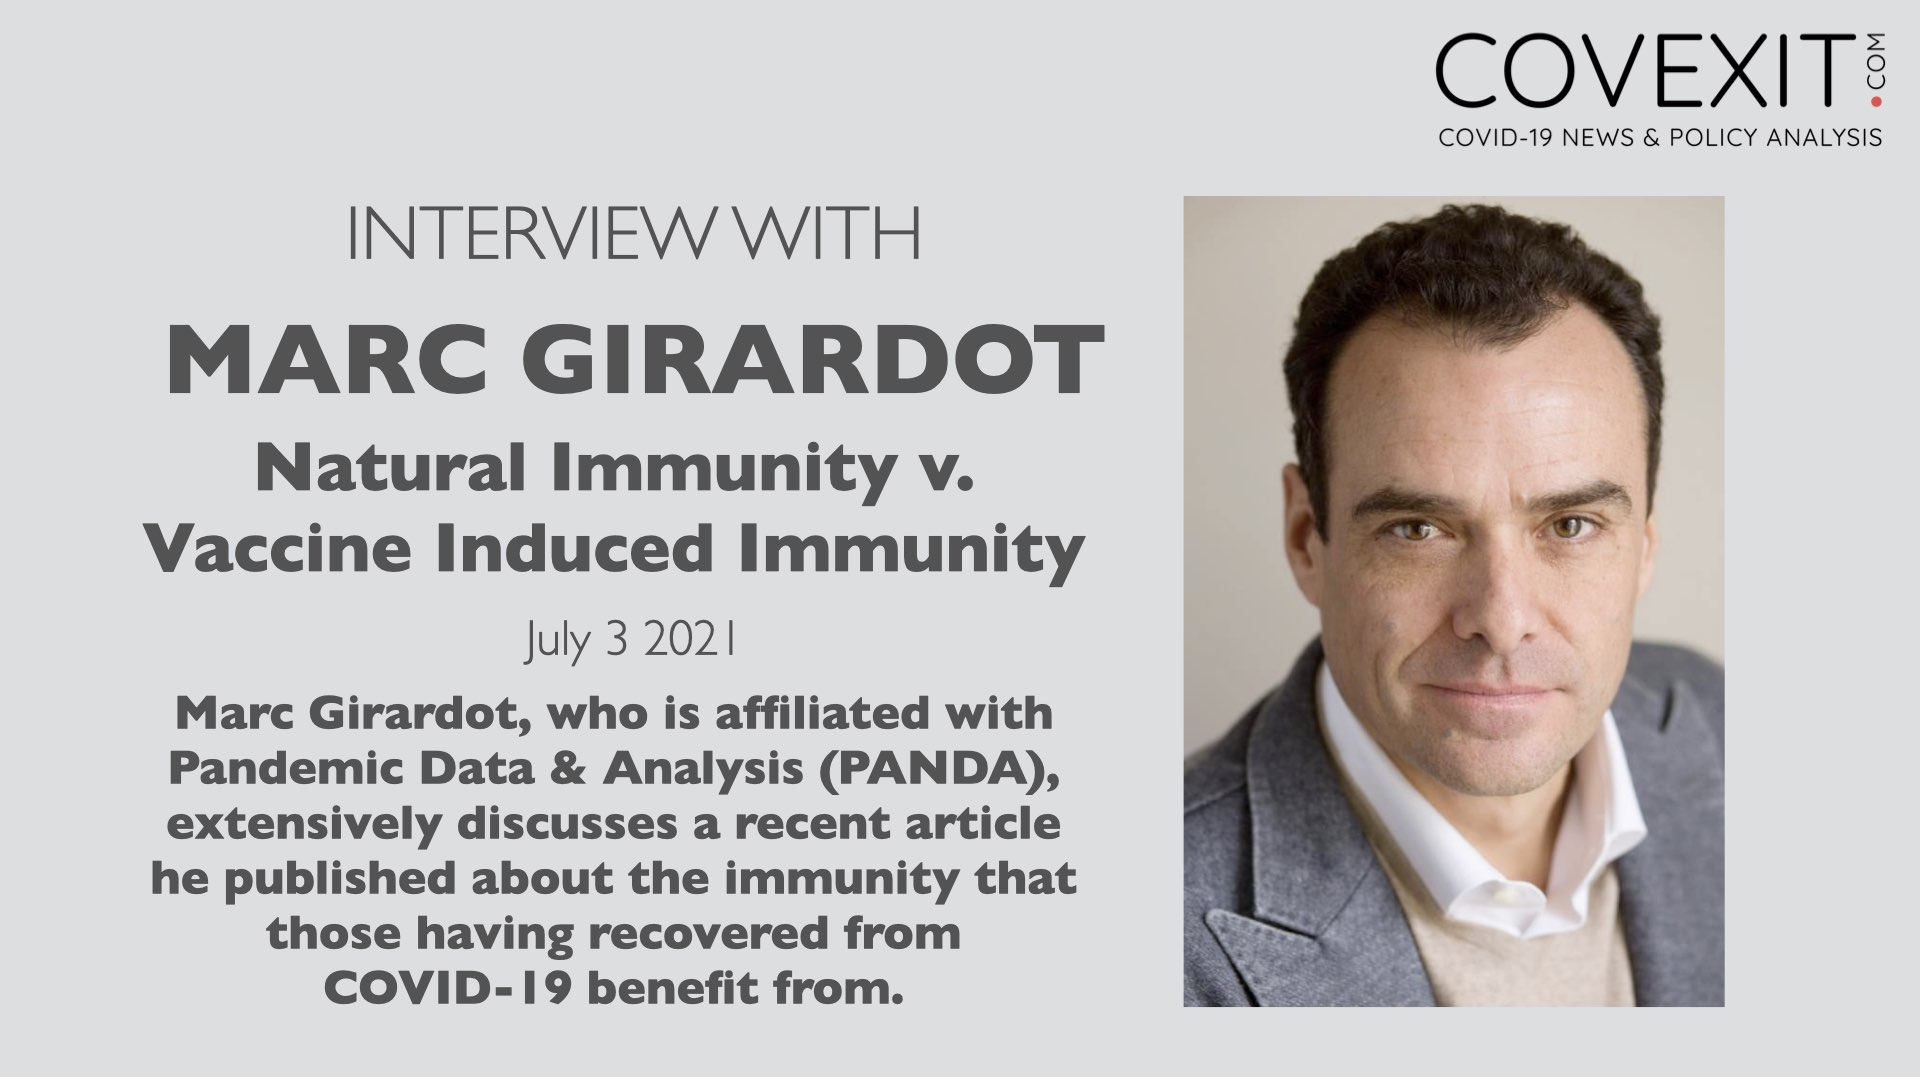 Interview with Marc Girardot: Natural Immunity